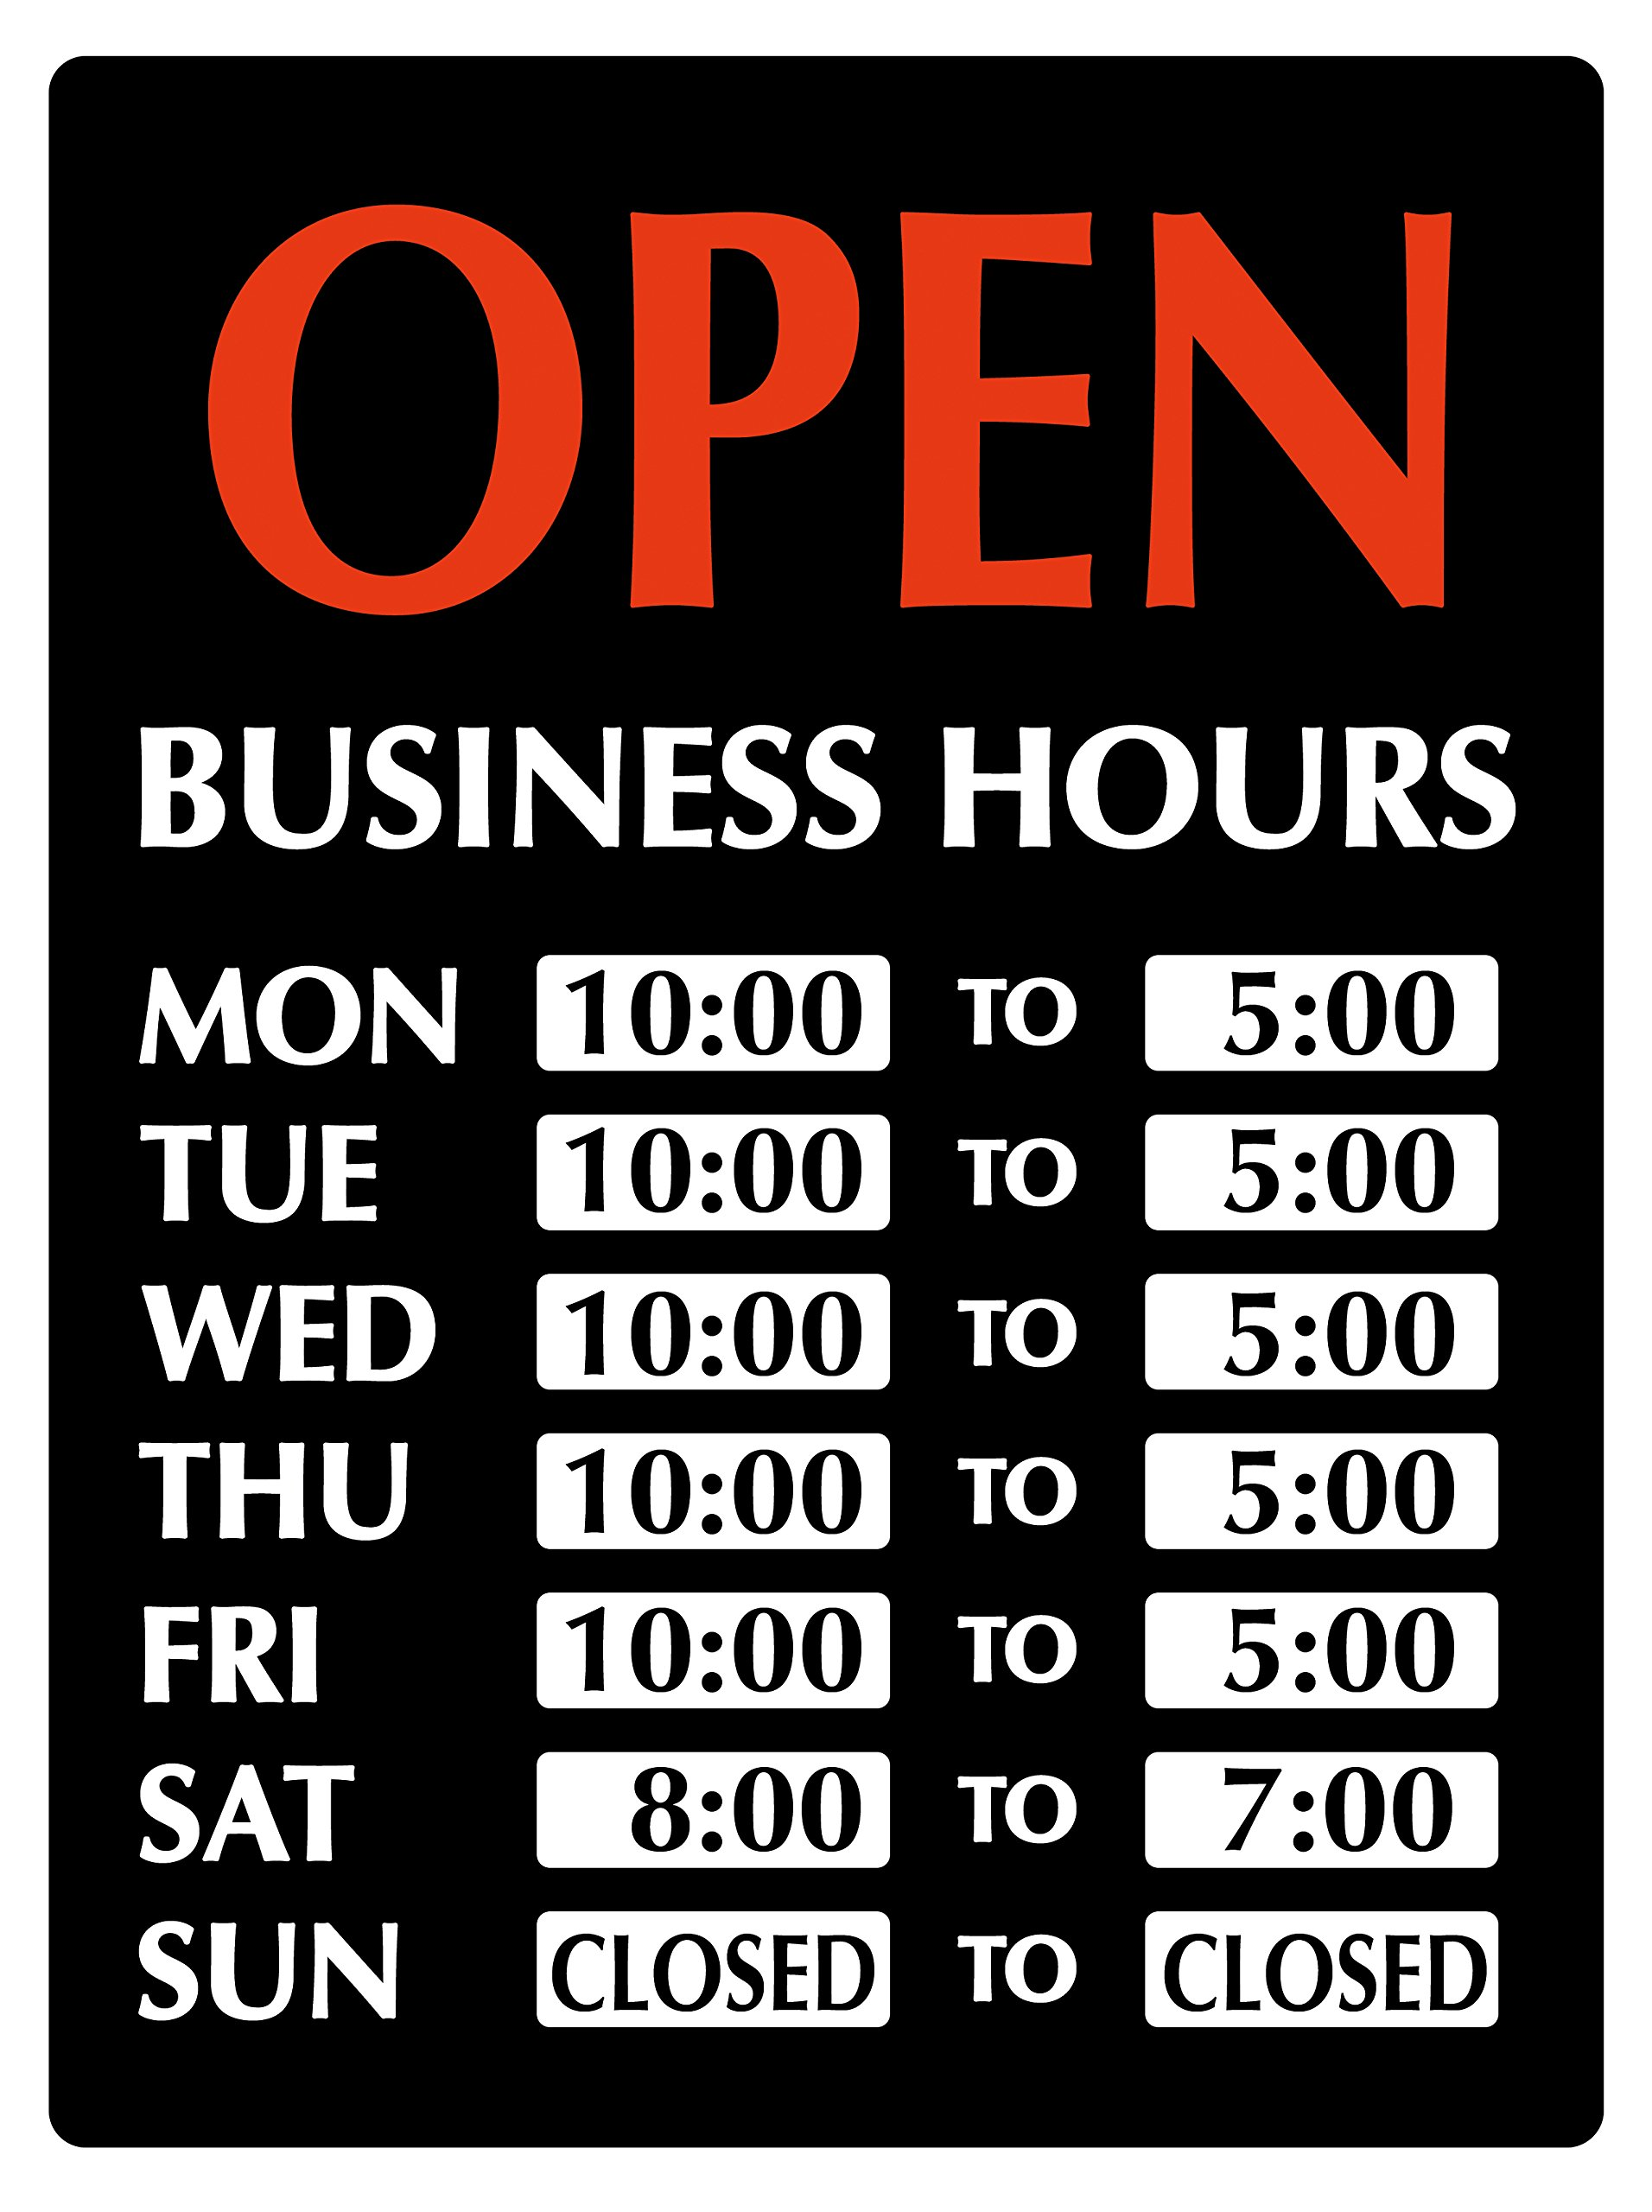 Newon LED Lighted OPEN Sign with Business Hours, 23.4'' x 20.4'' x 1.2'', Black/White/Orange (9442)